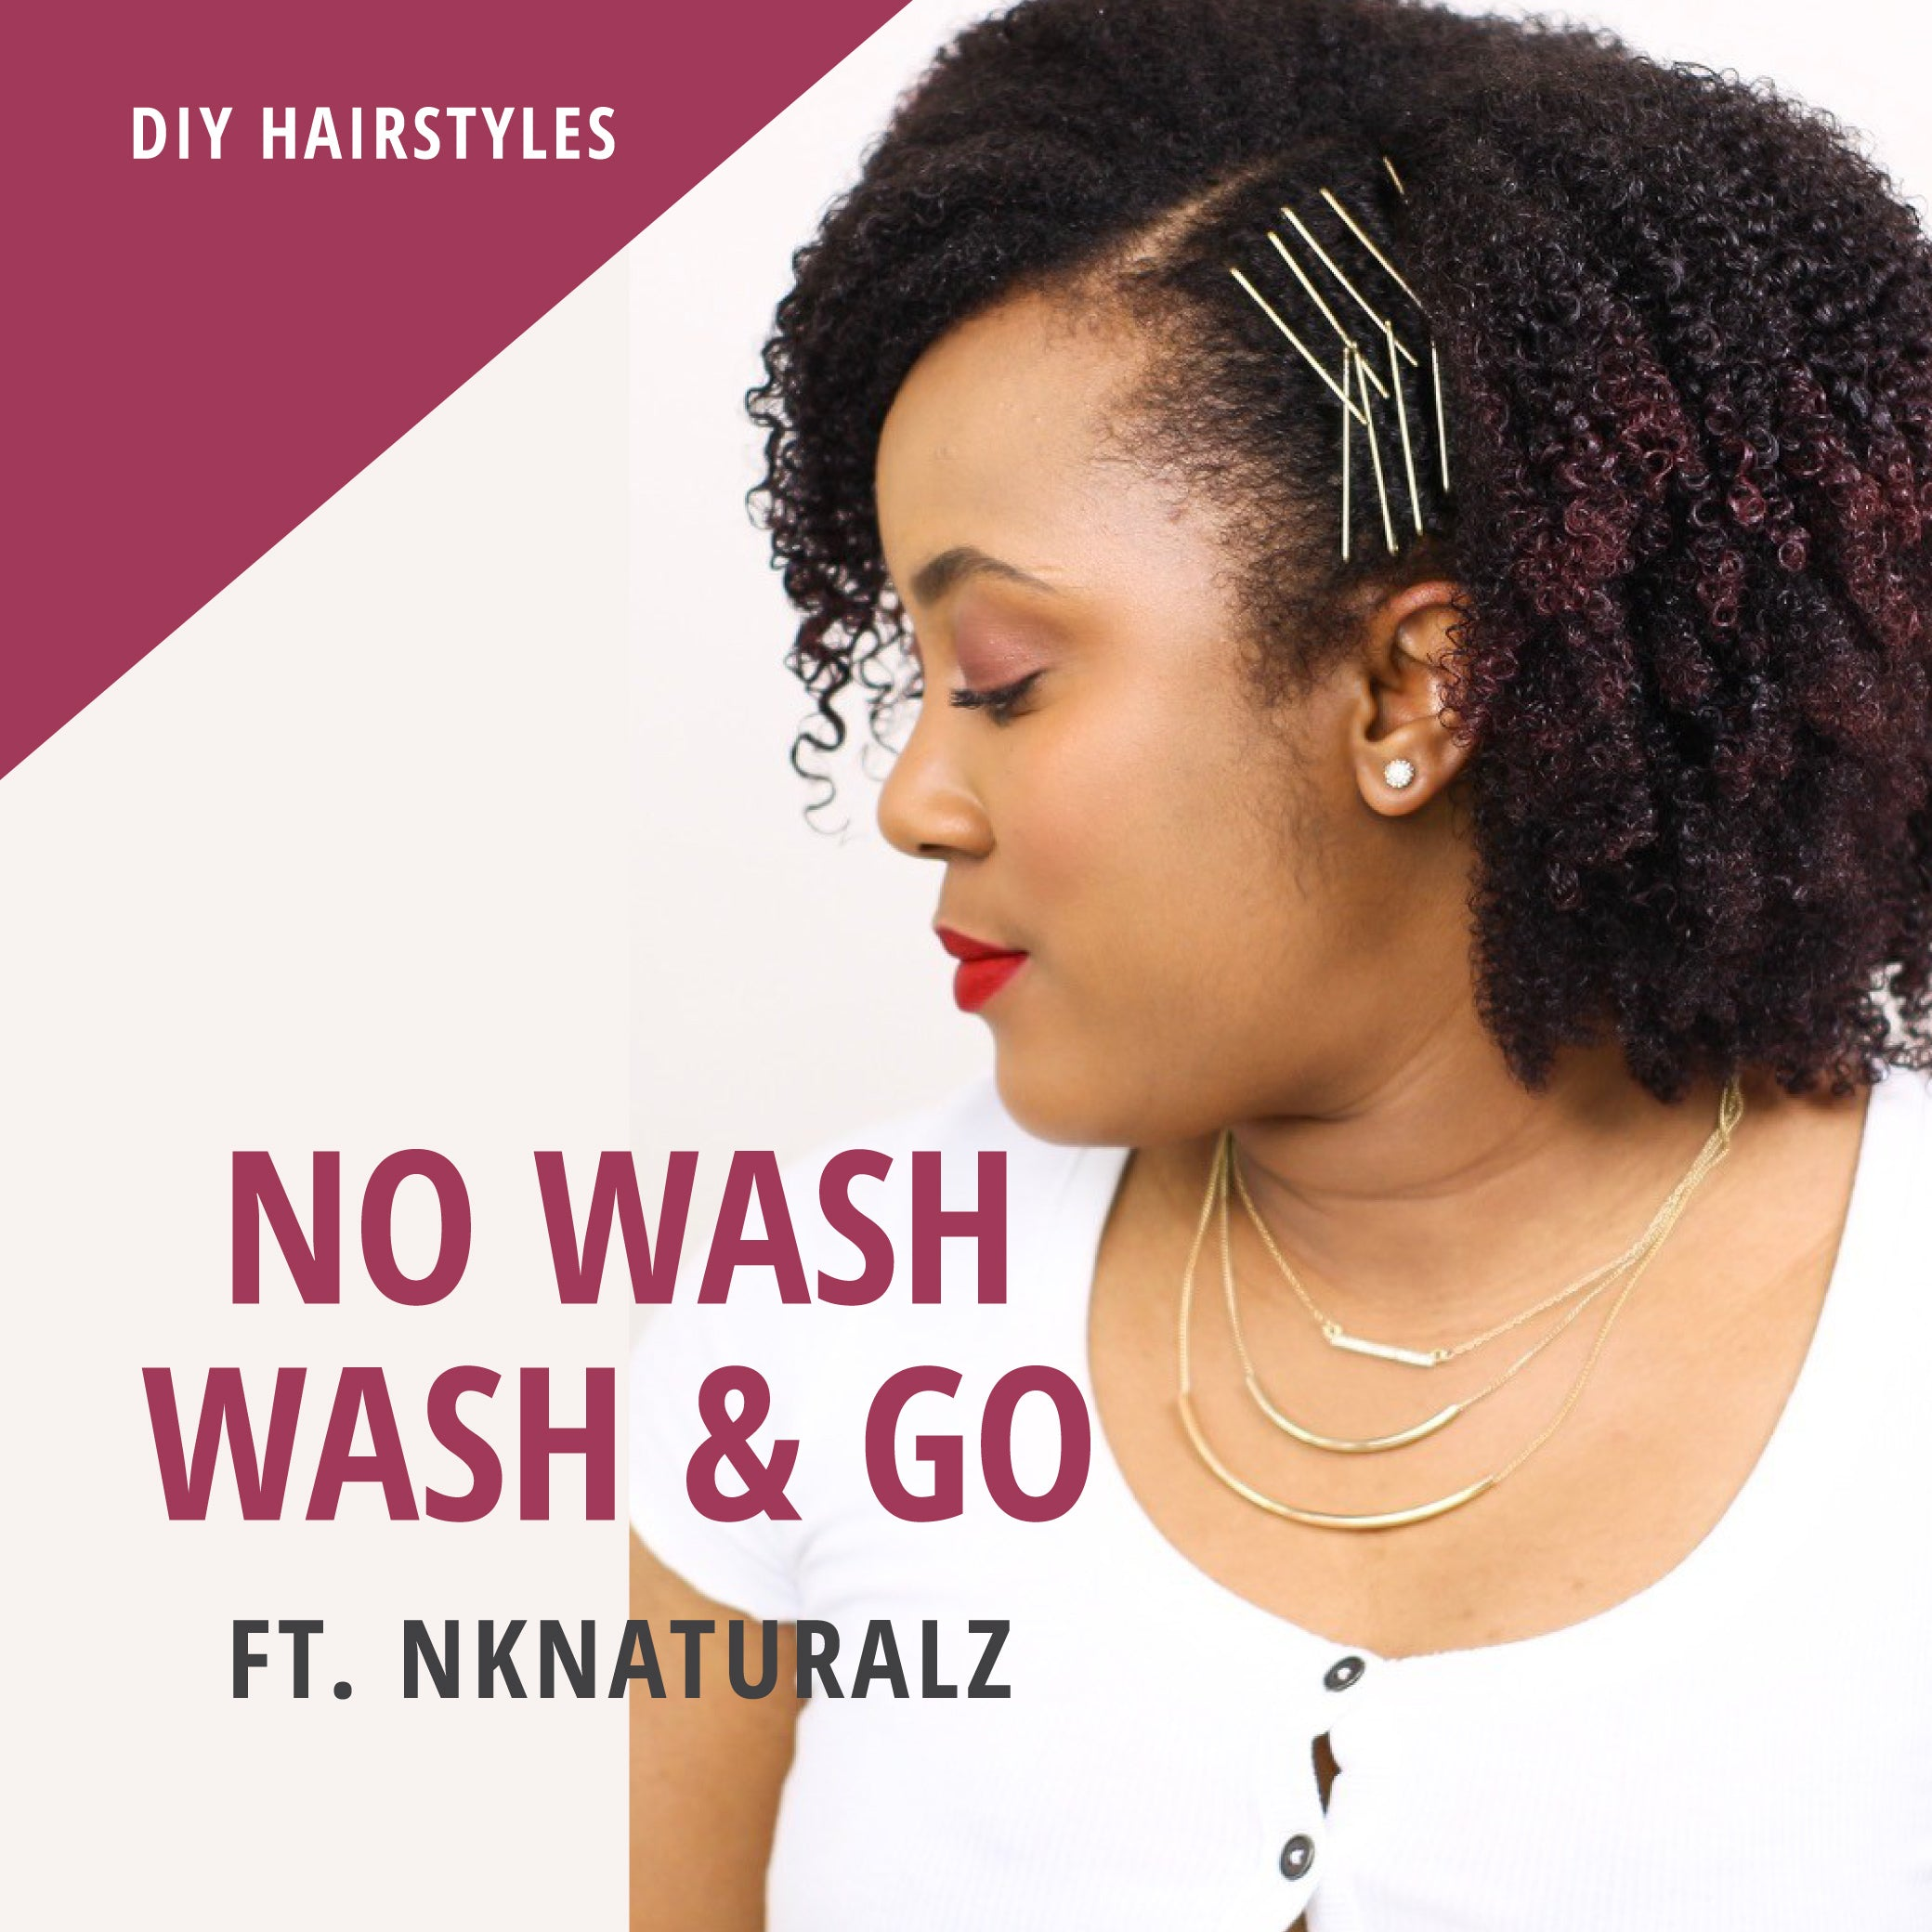 No Wash Wash & Go